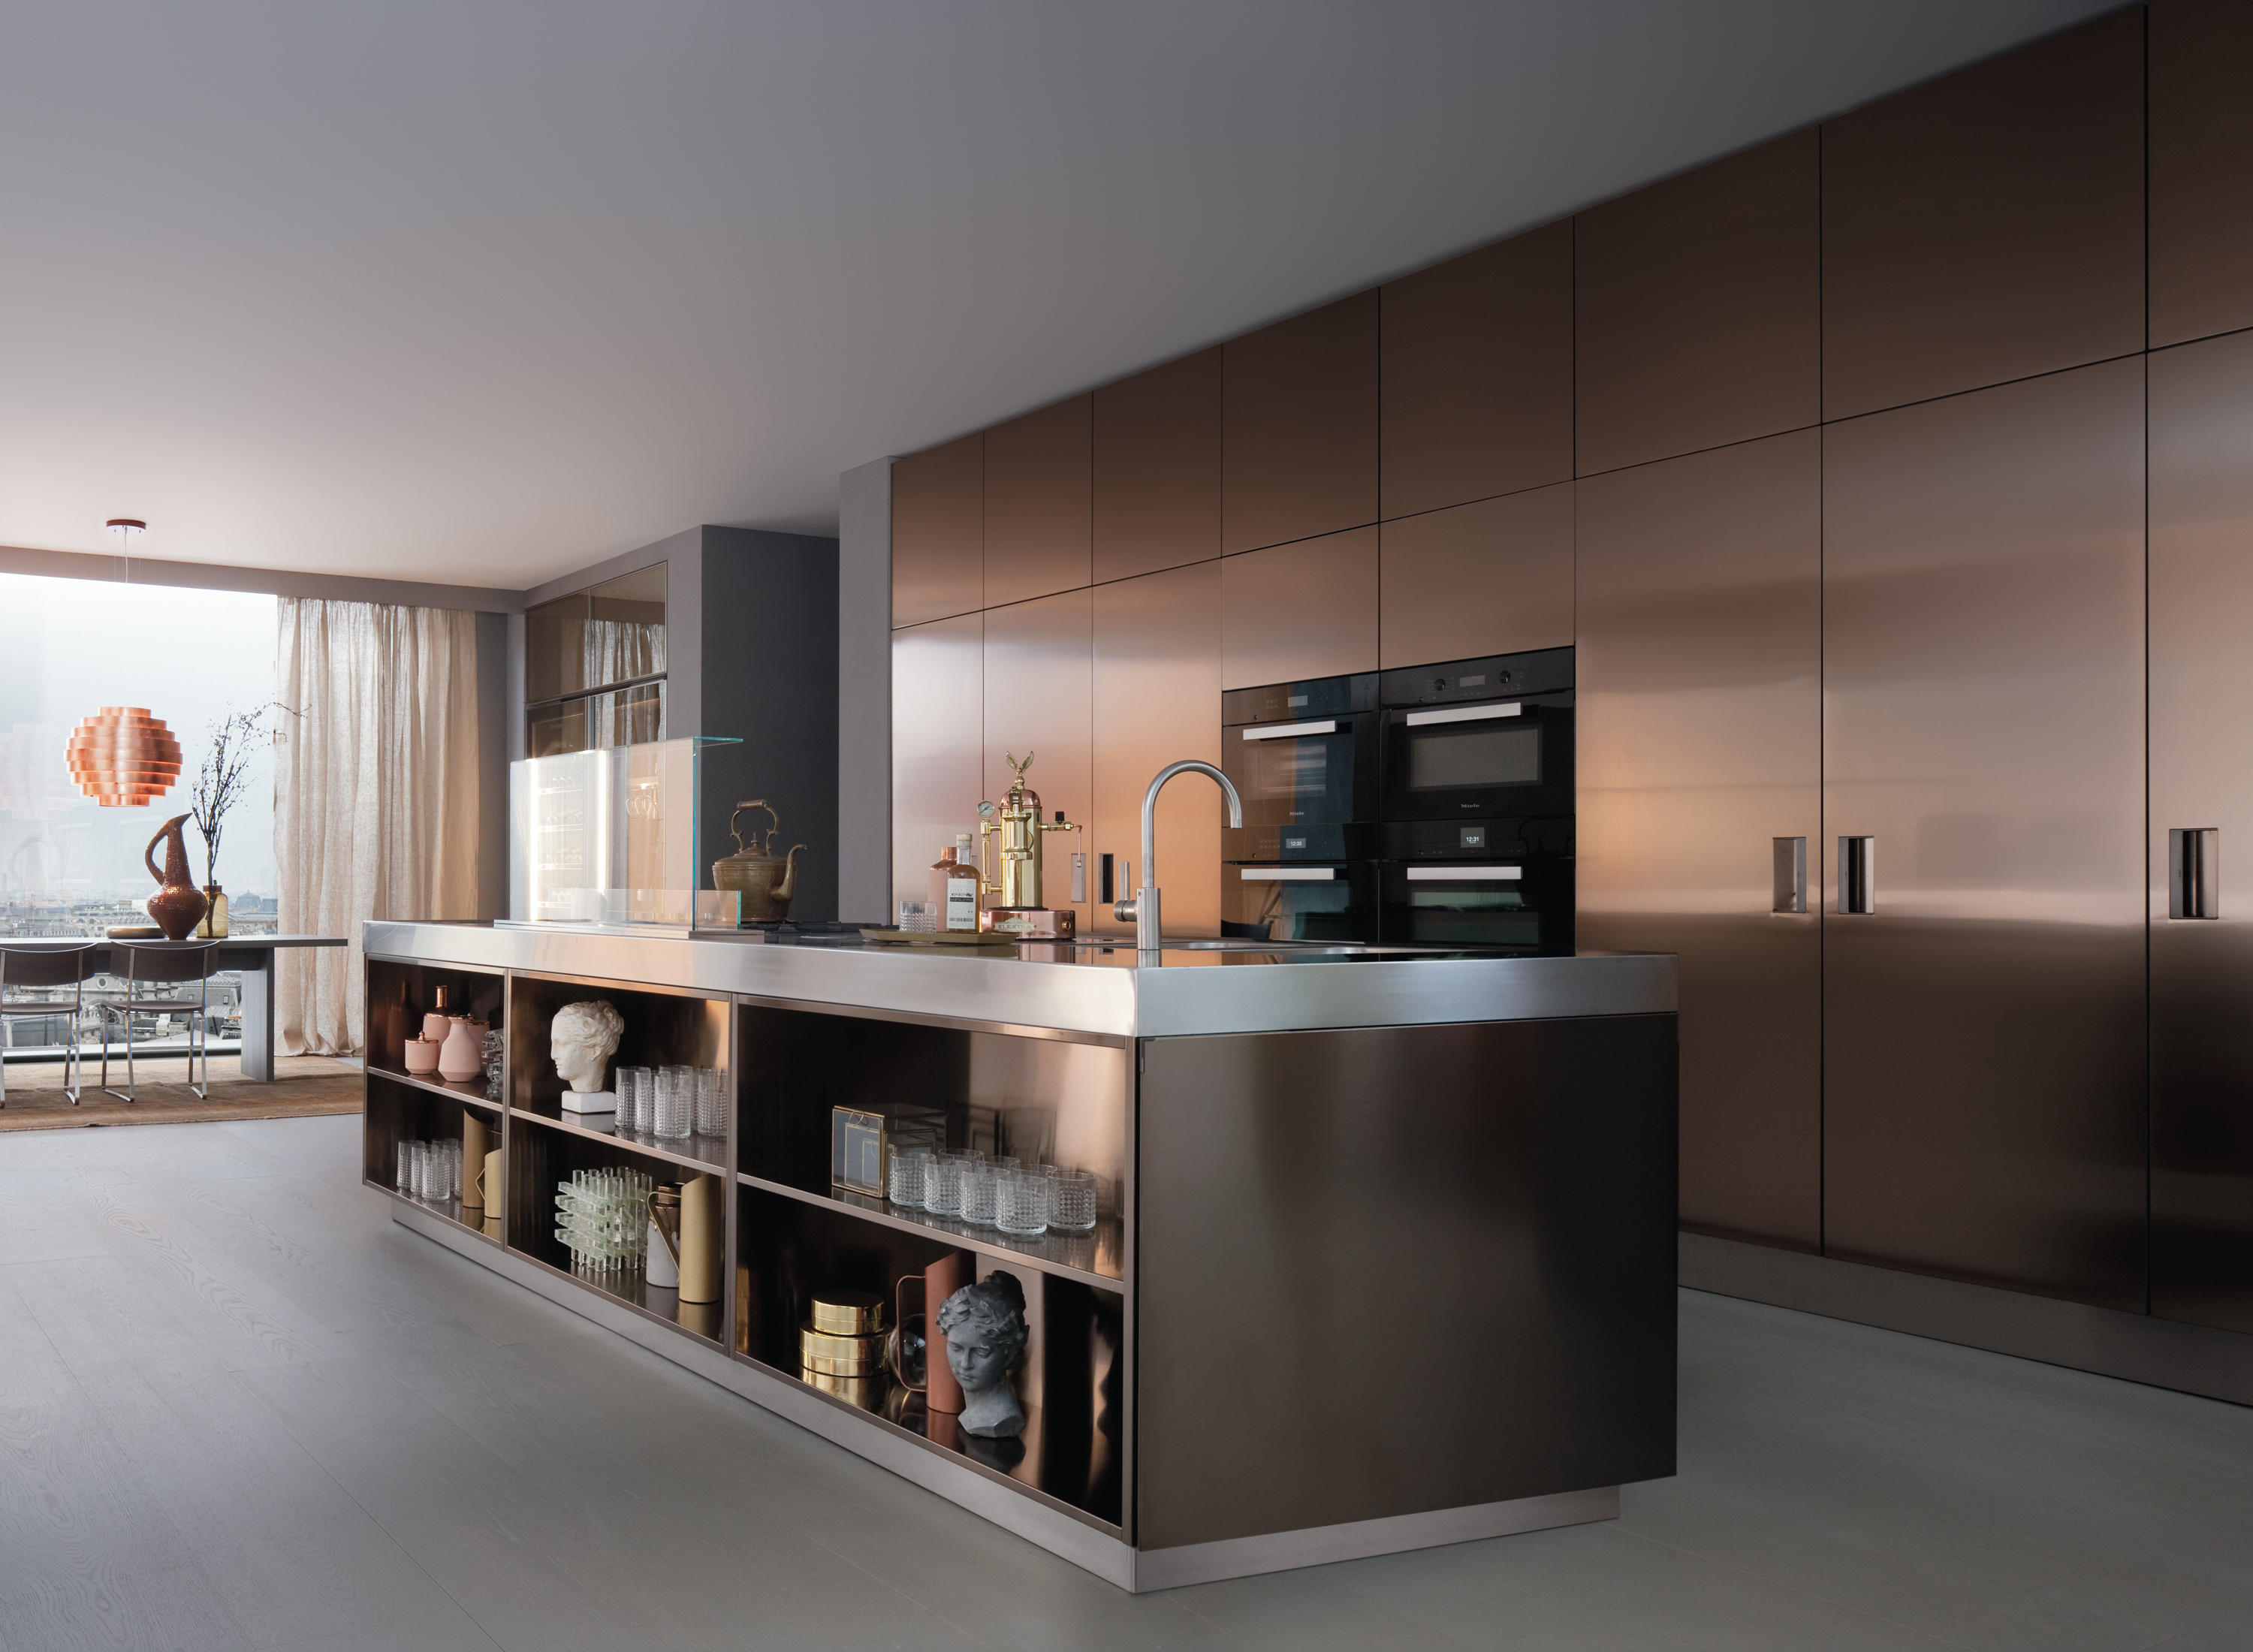 Italia ambiente 2 by Arclinea | Fitted kitchens .